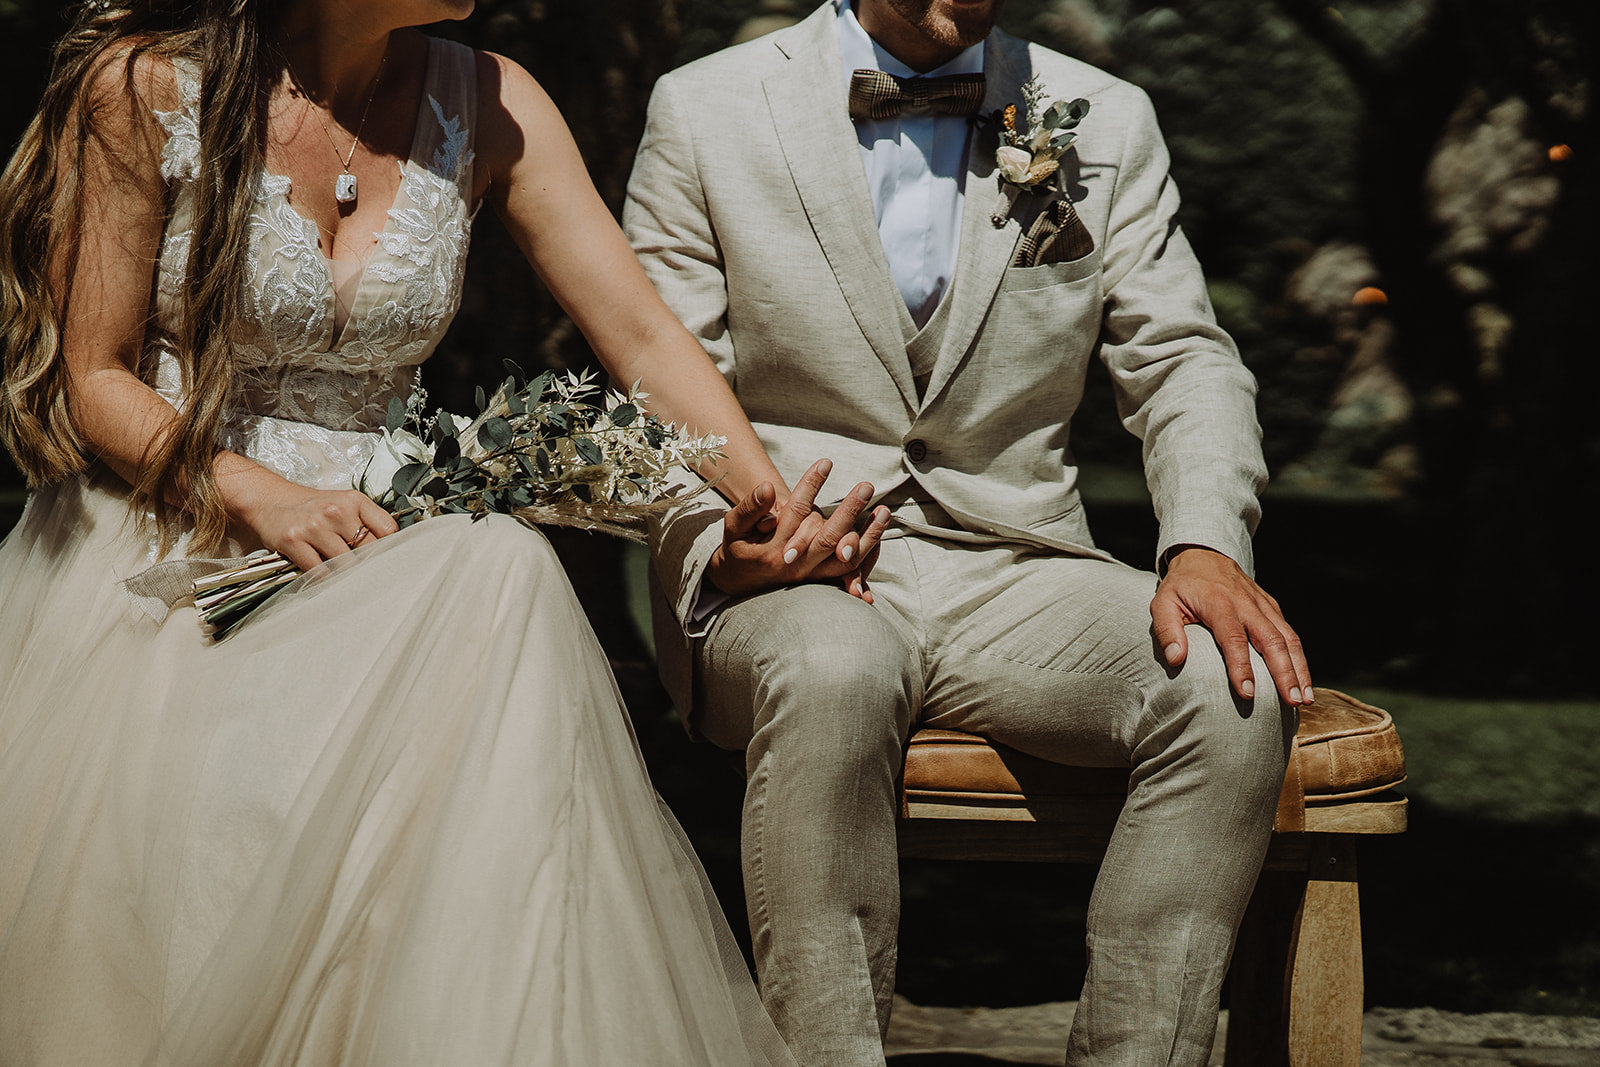 Bride and Groom wearing their pre-loved sustainable wedding dress and suit, with the Bride holding her flowers. They both hold hands.